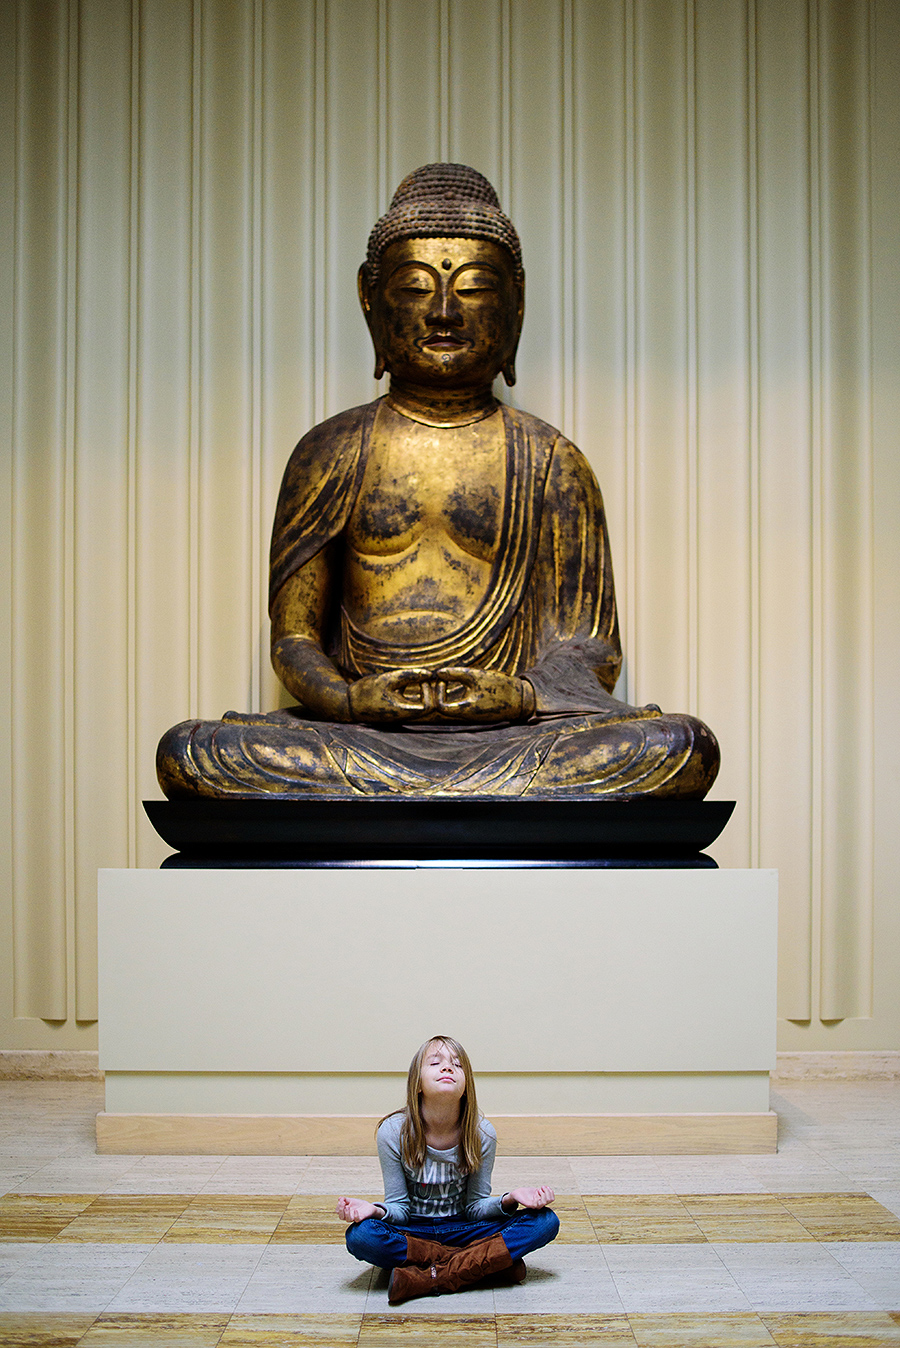 moment of zen at the nelson-atkins art museum in kansas city